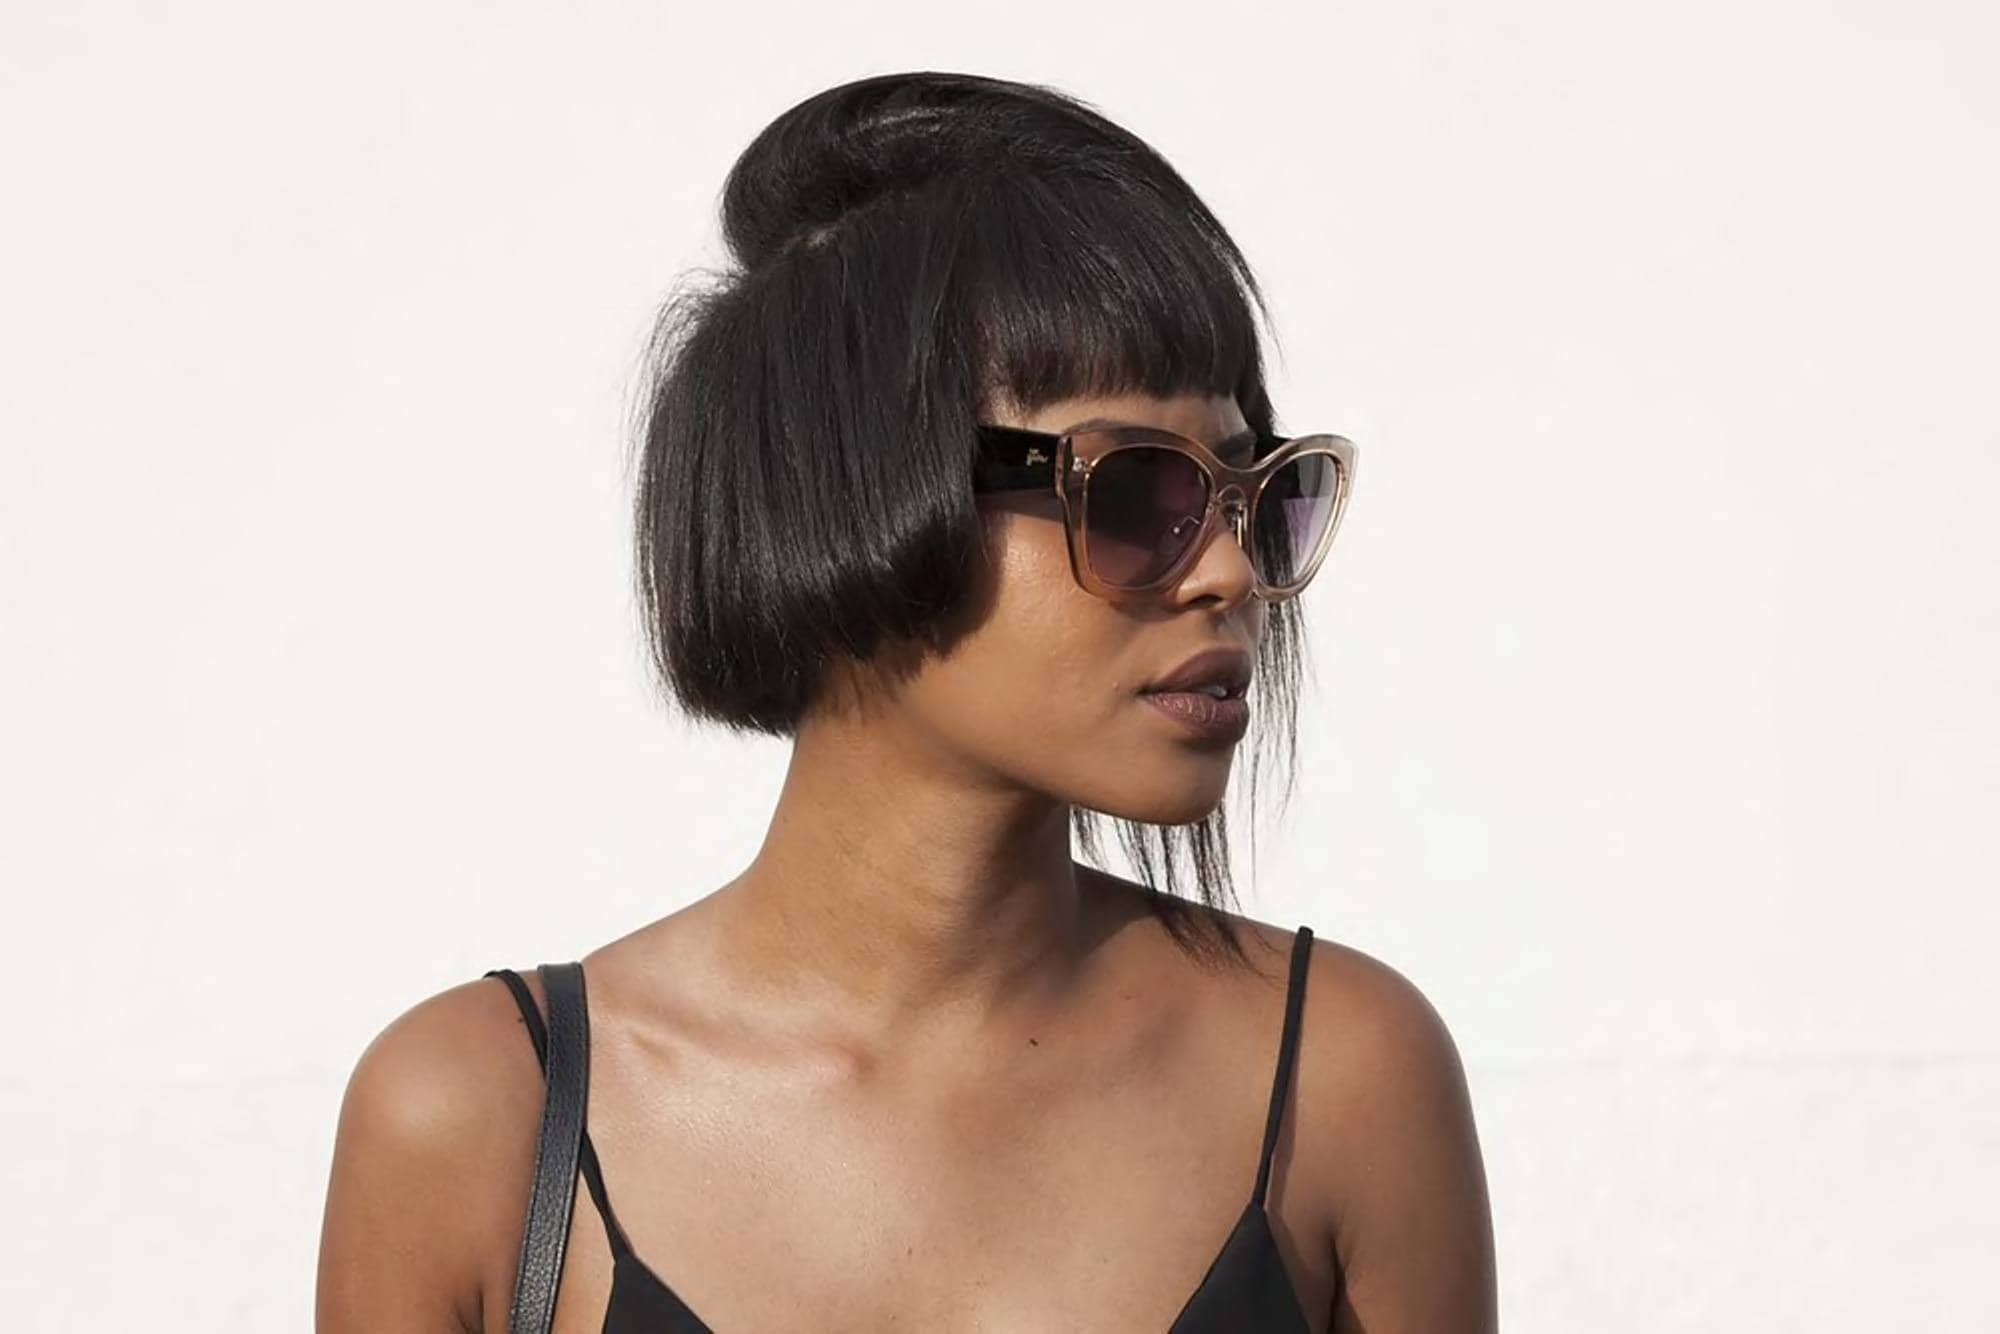 blunt haircut with a cool layer